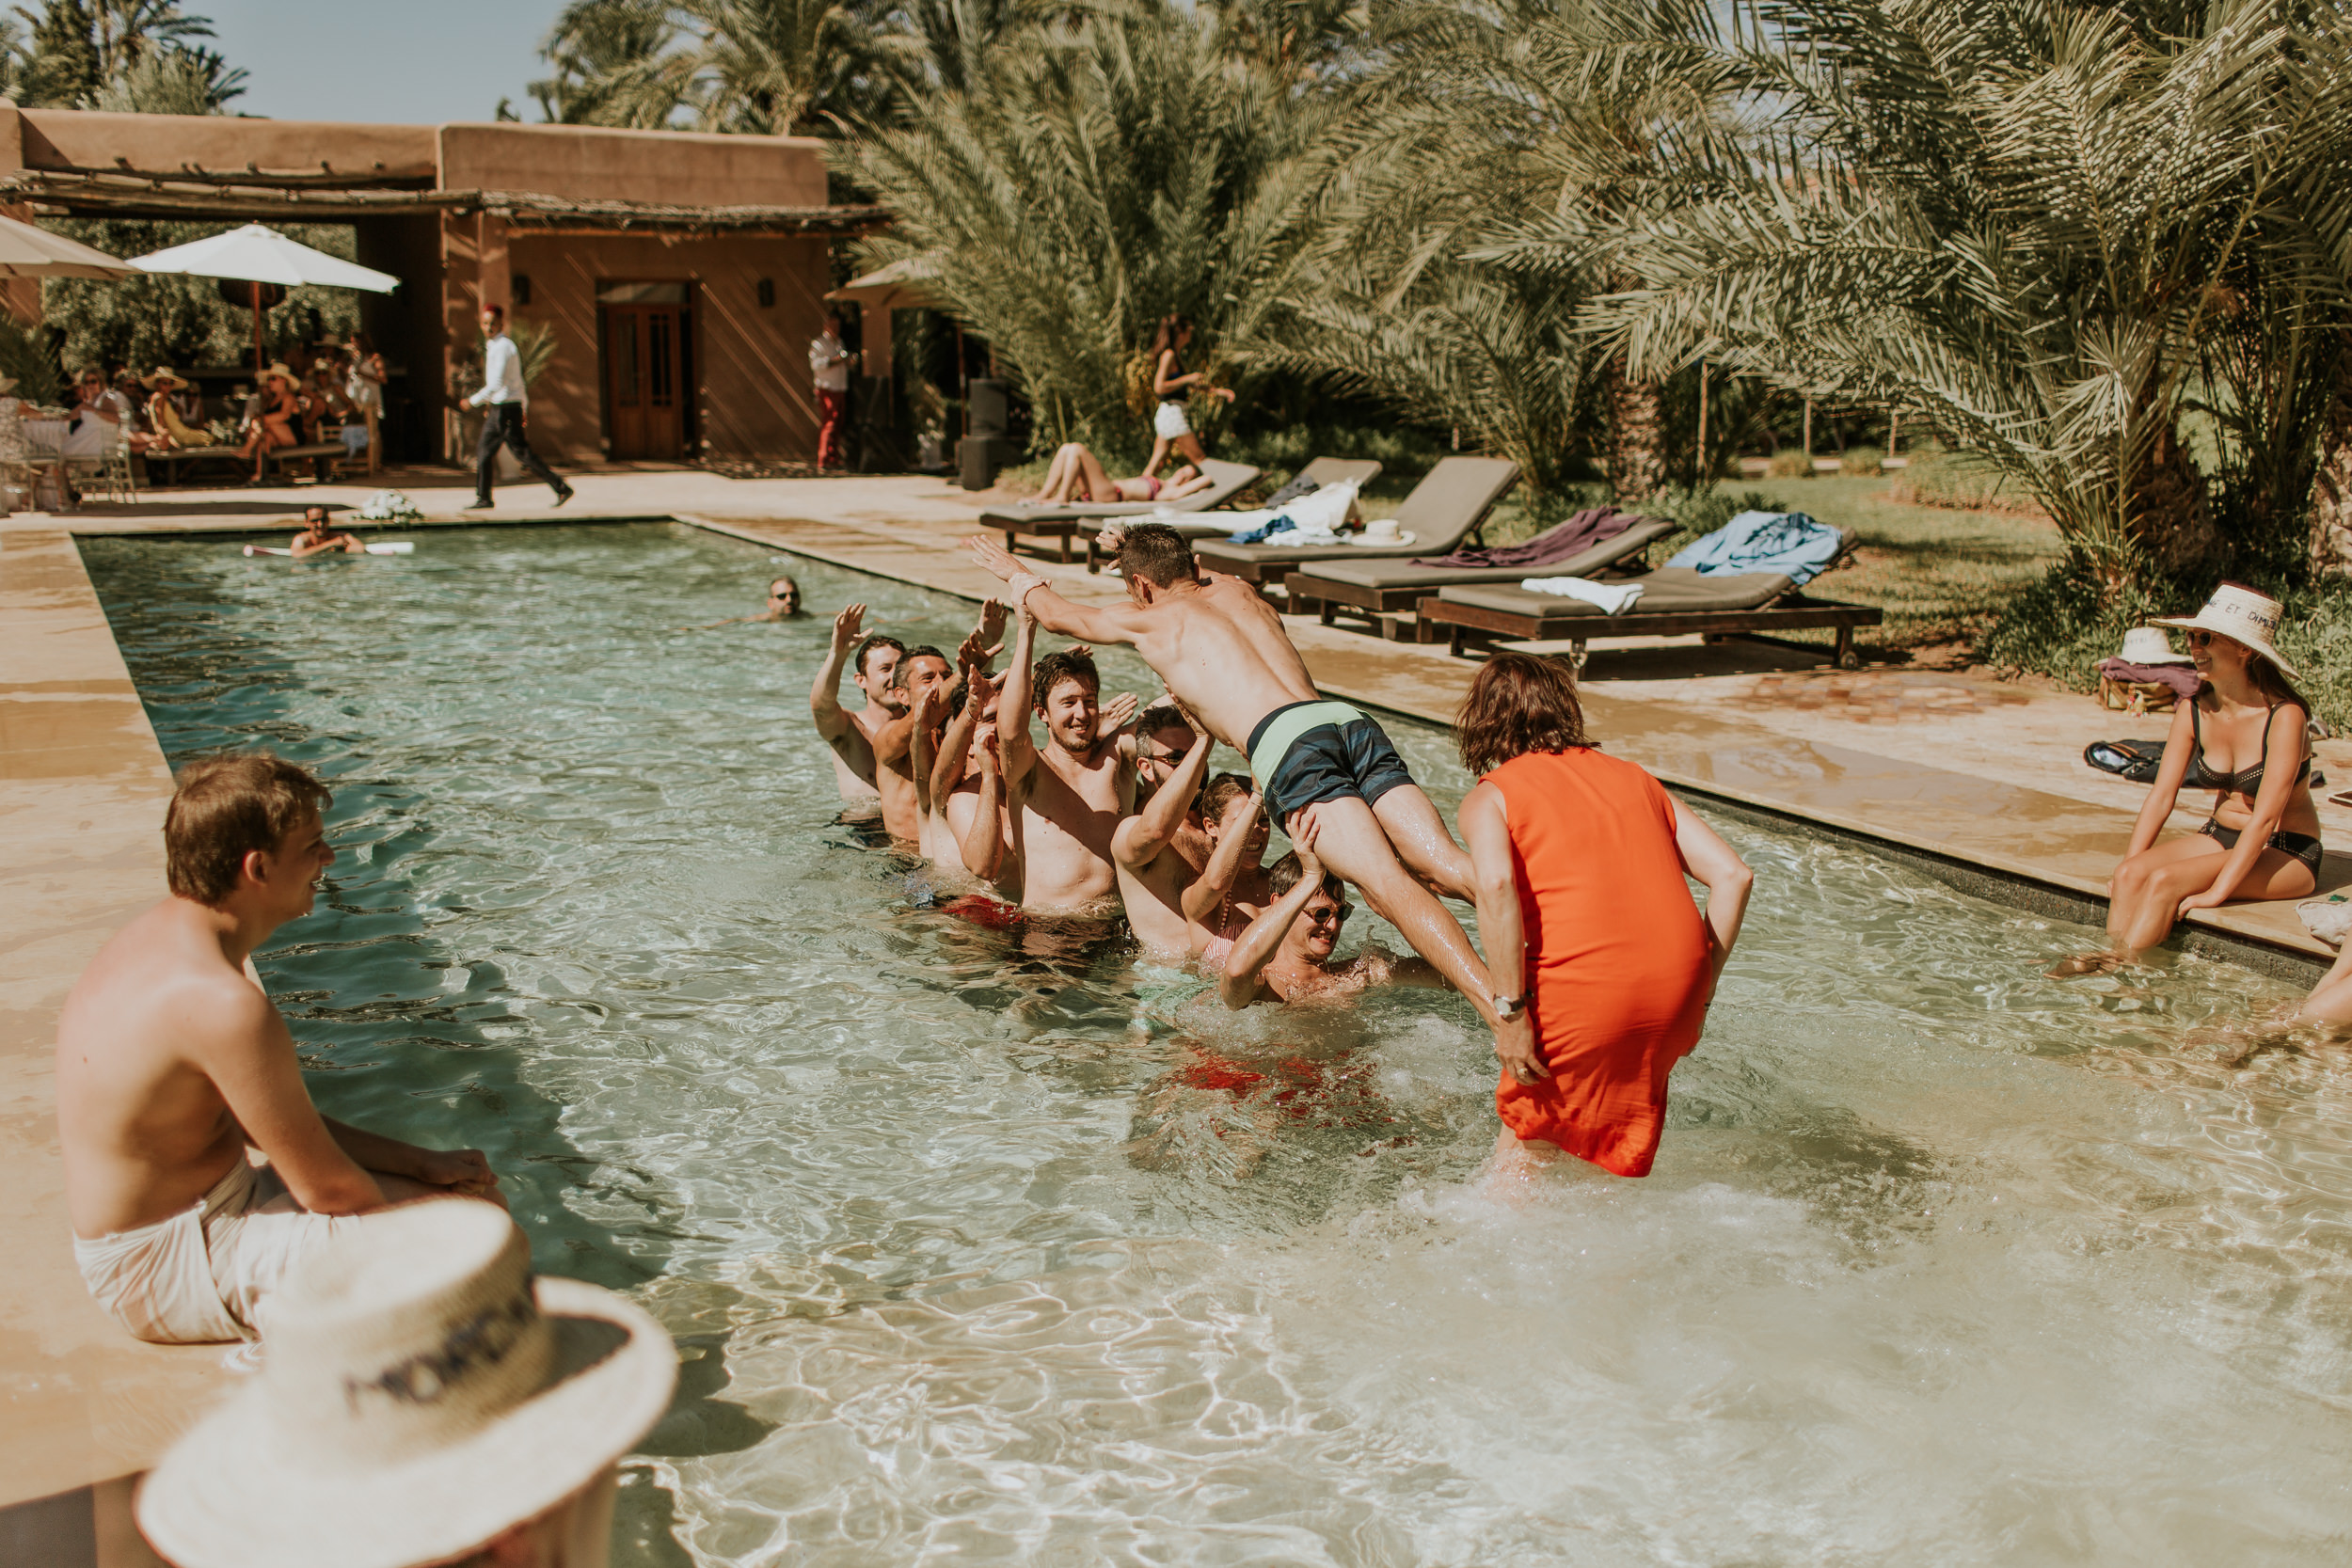 morganedimitri_davidmaire_marrakech_destinationwedding-352.jpg